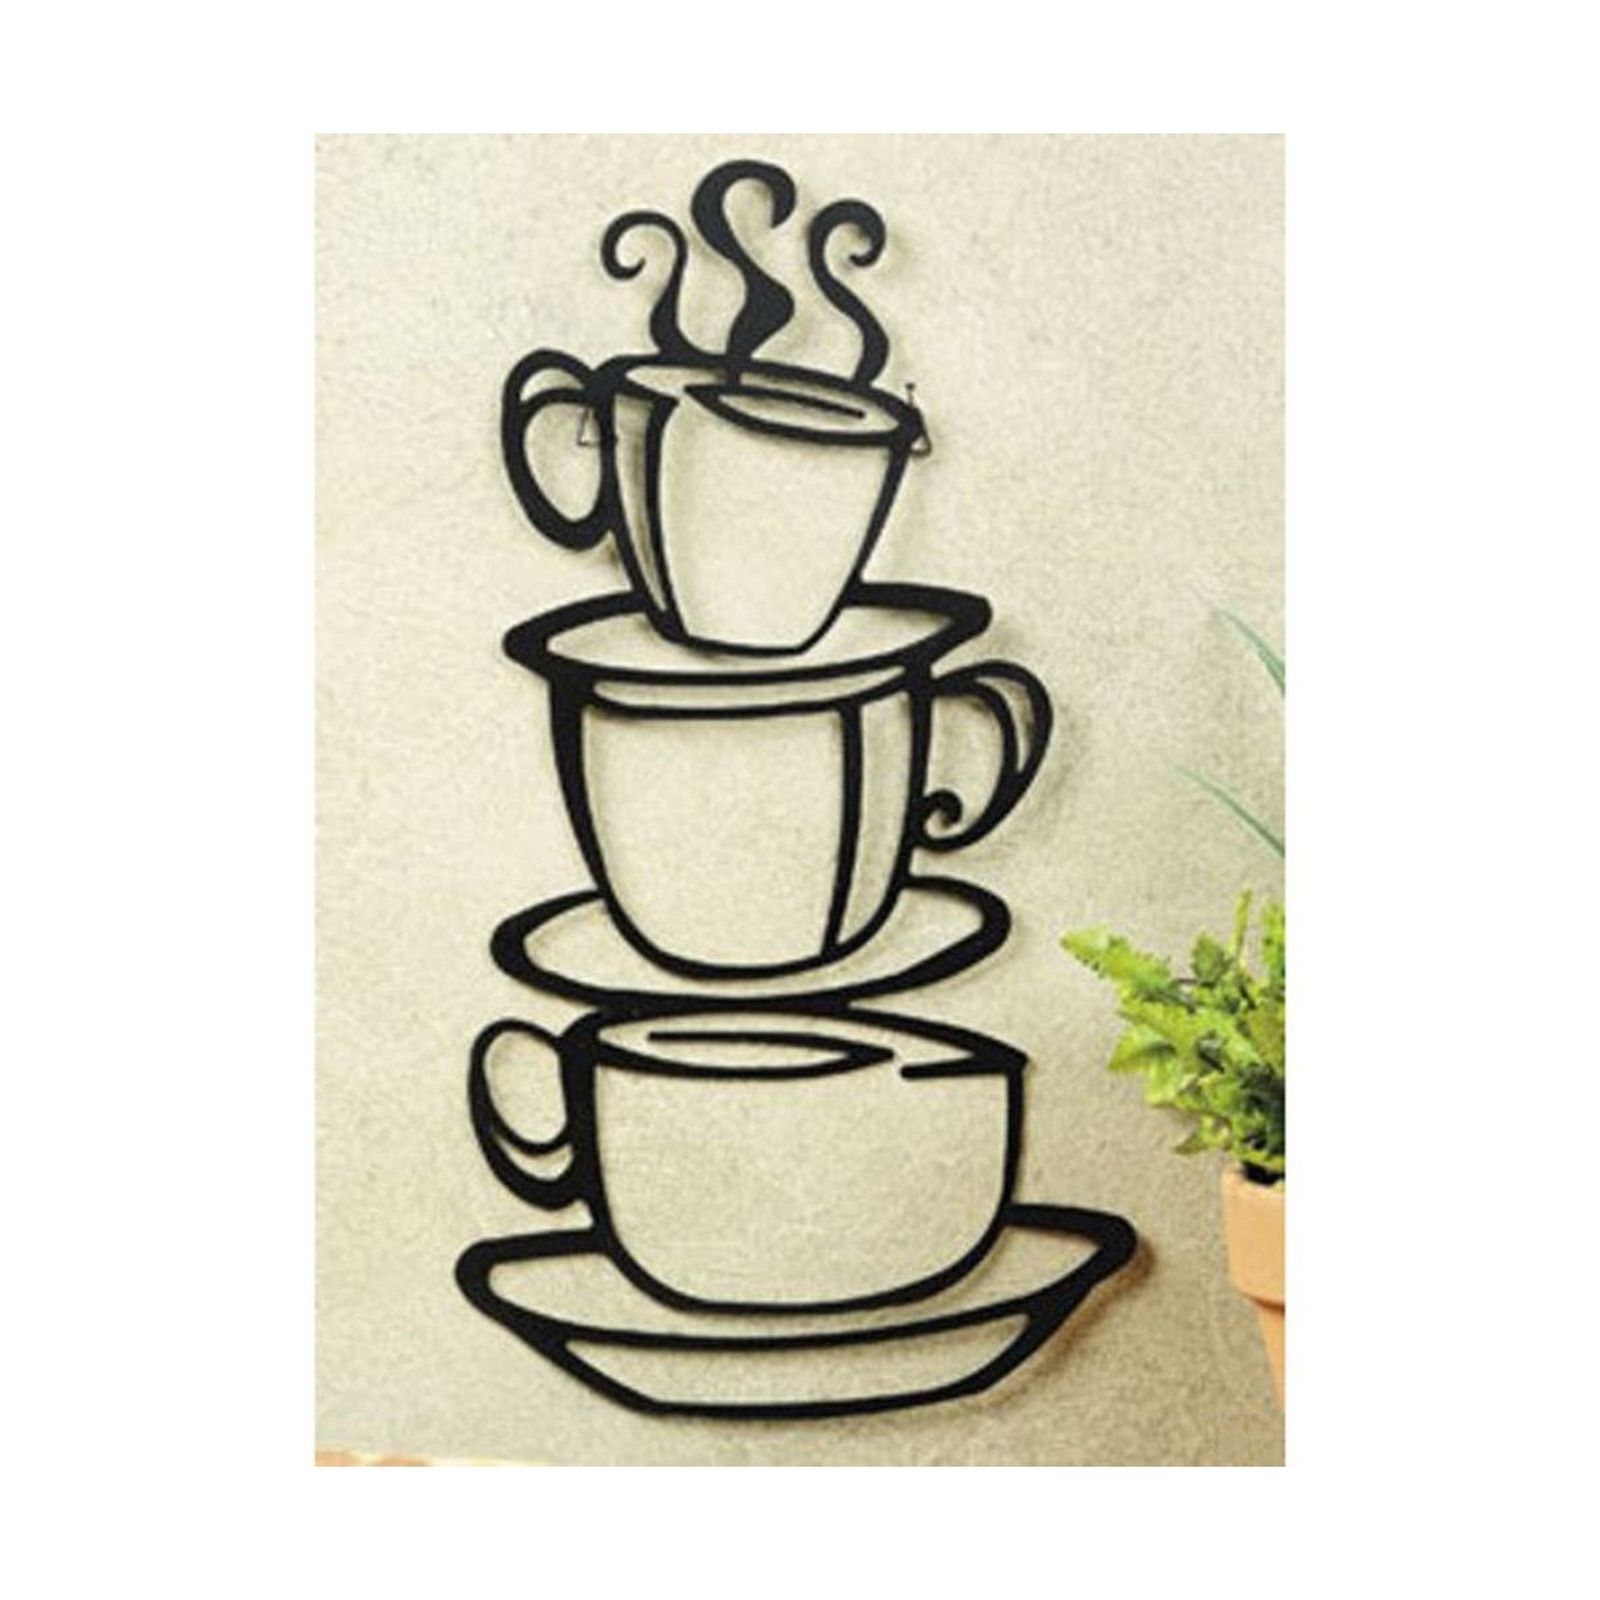 1600x1600 Coffee Metal Wall Art Glamorous Coffee Cup Wall Art Duo Metal Wall